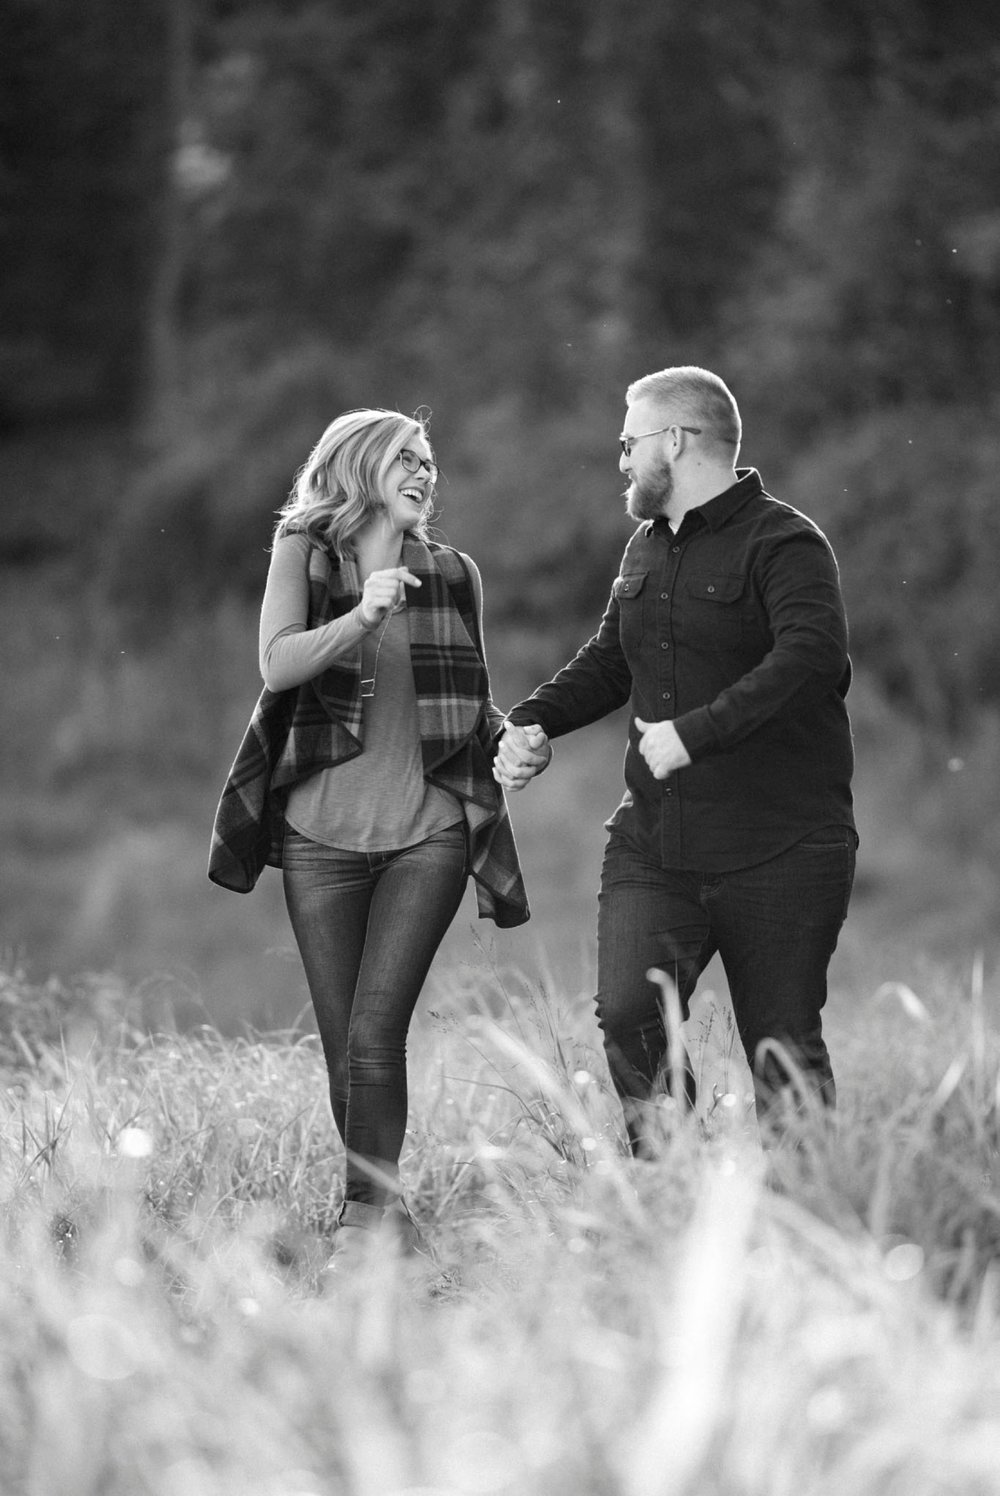 engagementsession_vaweddingphotographer 7.jpg